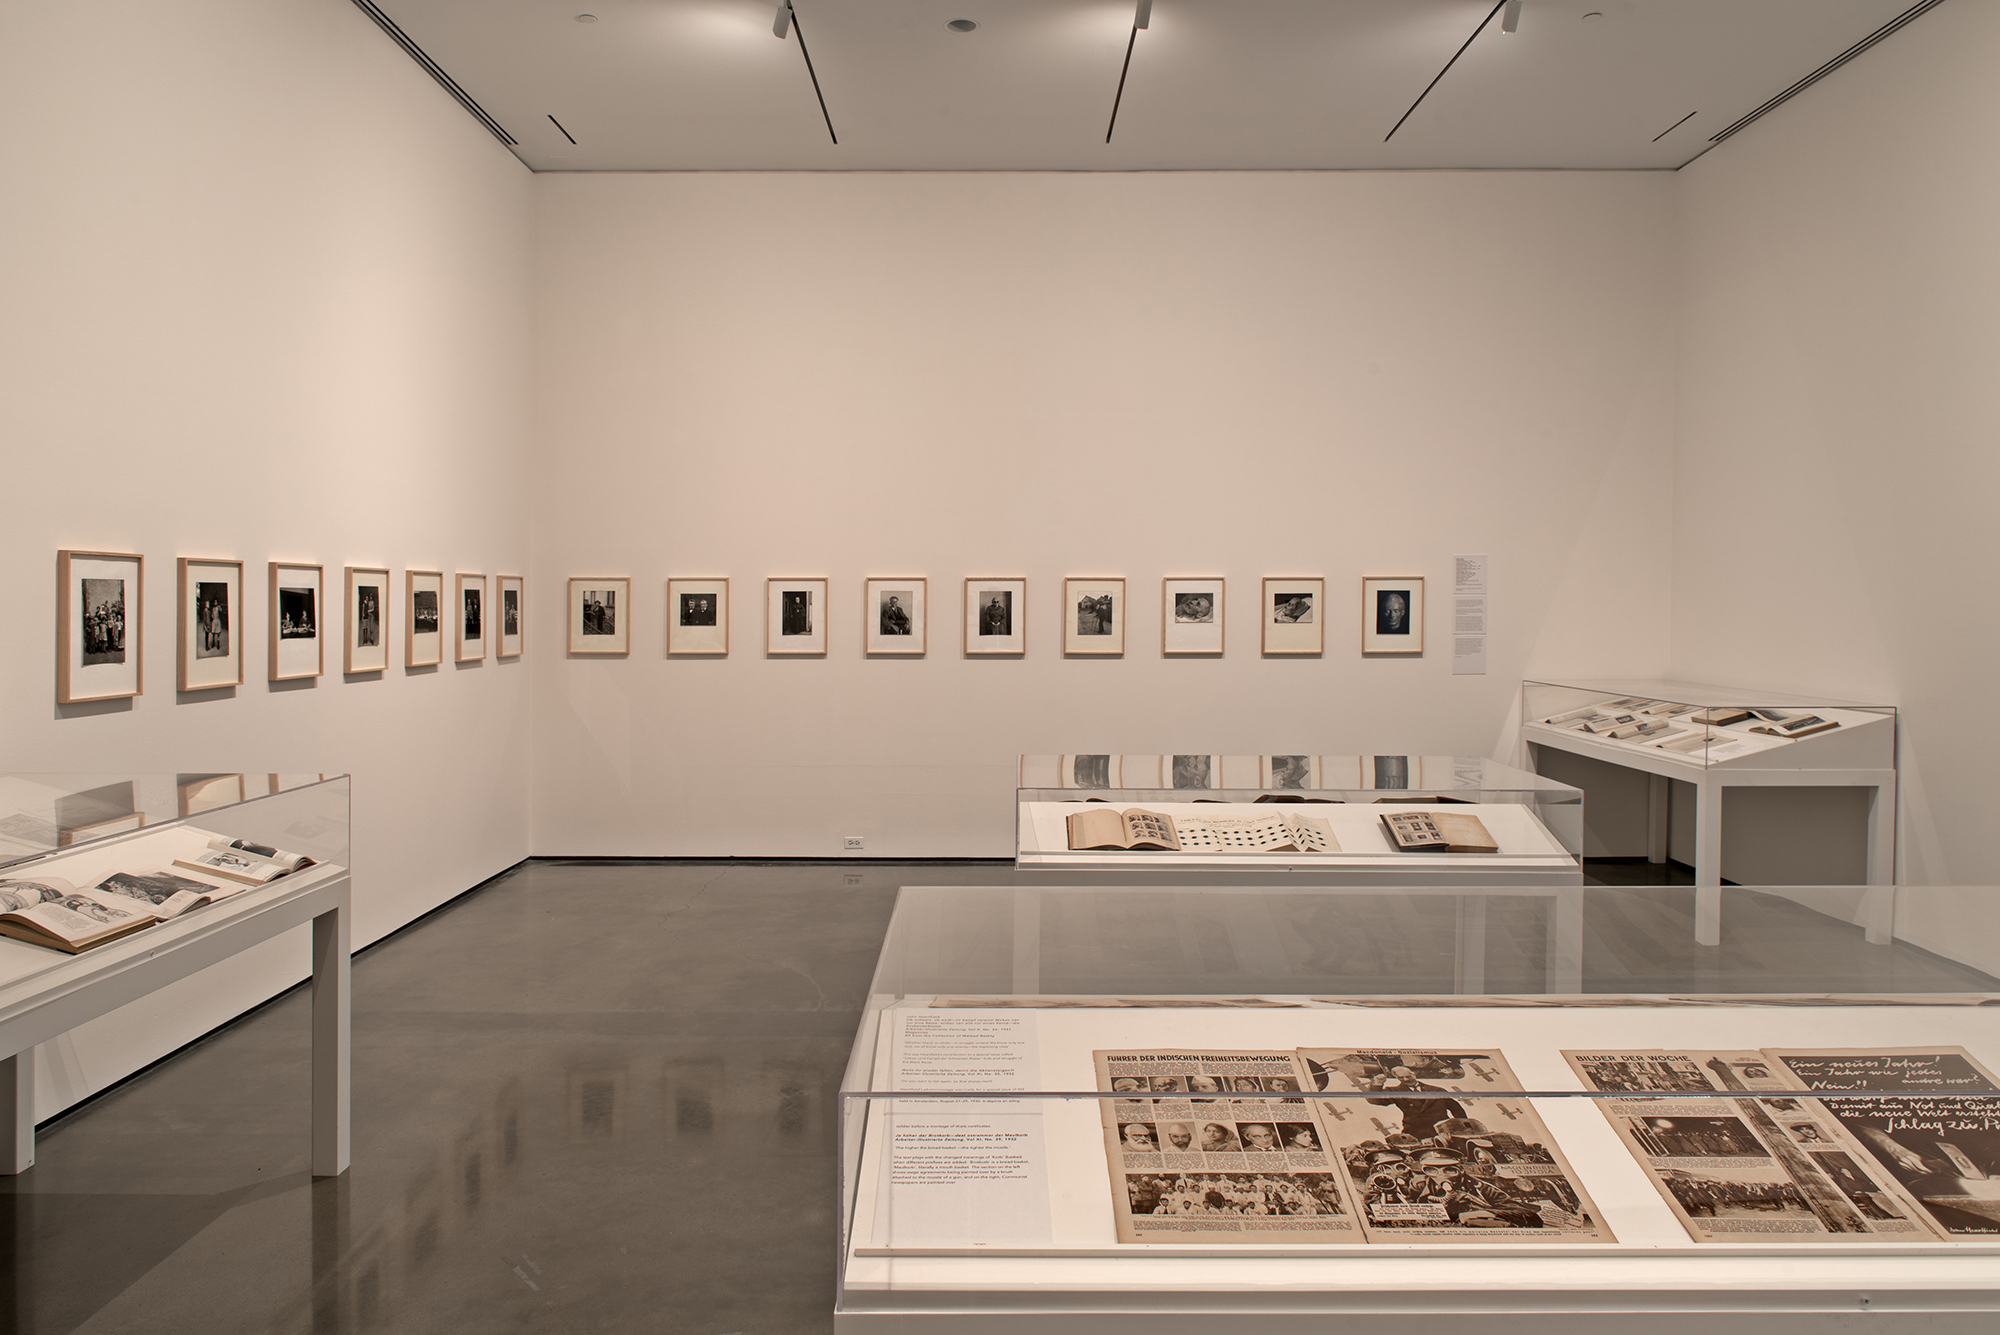 Picture Industry , Hessel Museum, Center for Curatorial Studies, Bard College, Annandale-on-Hudson, NY, 2017.     Fritz Kahn, Ernst Friedrich, August Sander, Duchenne de Boulogne, David Walsh, Alphonse Bertillon, Francis Galton, Charles Darwin, Lewis Hine, and John Heartfield